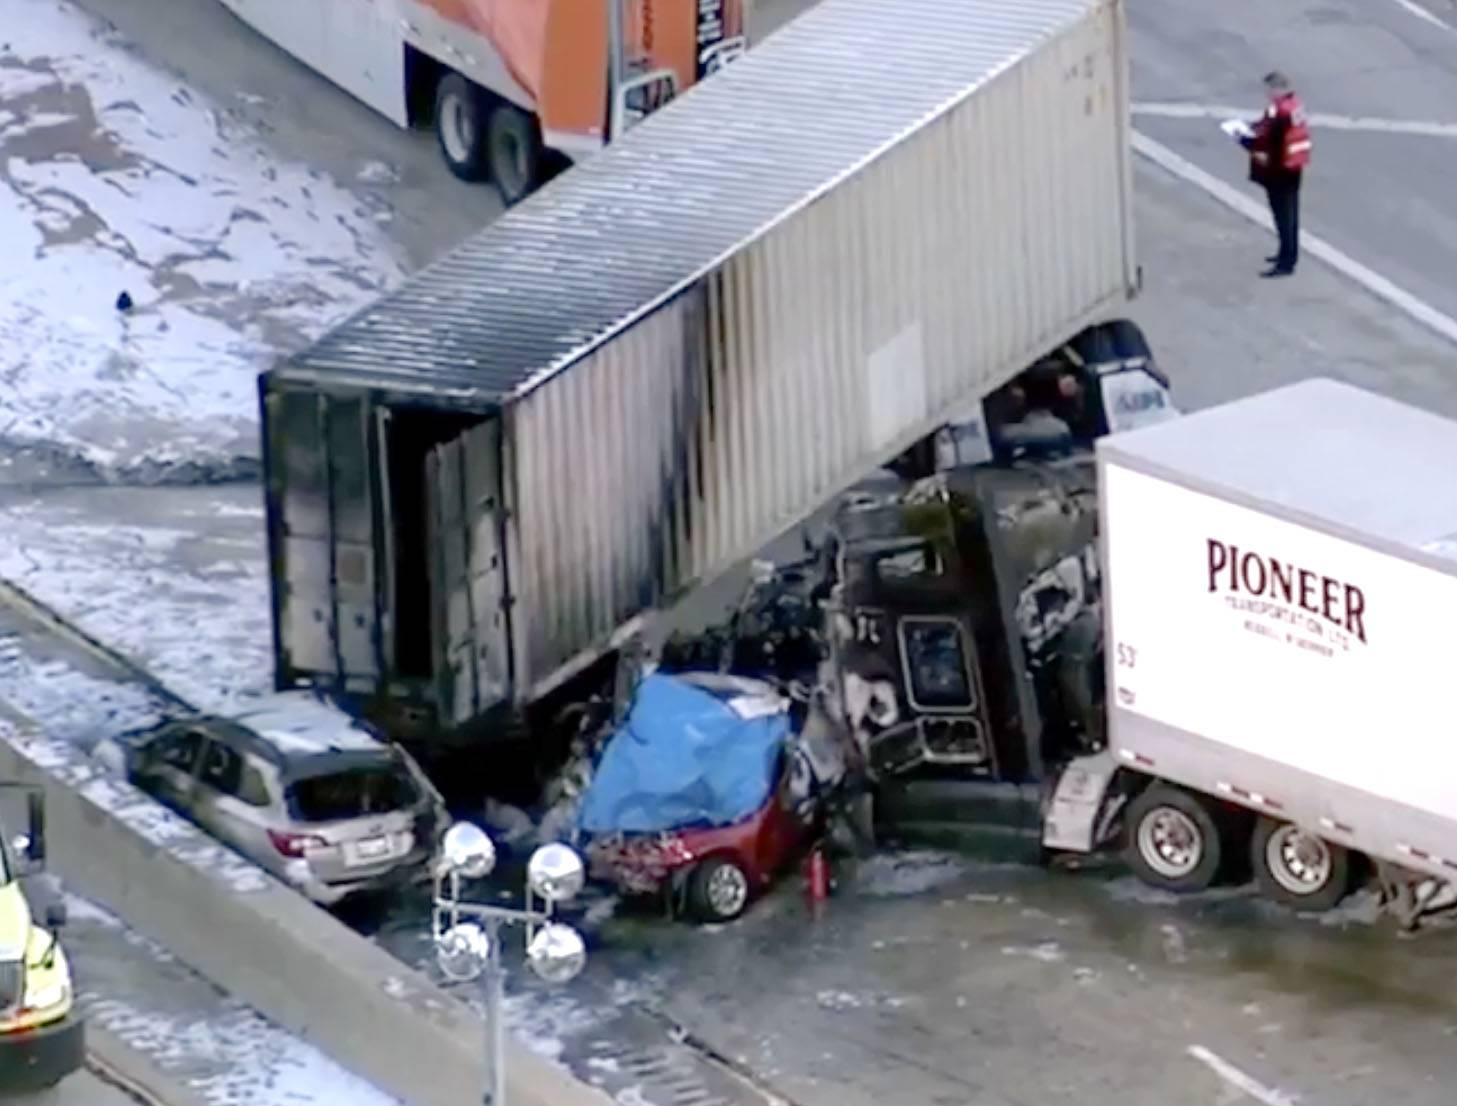 A seven-vehicle crash killed a Munster, Indiana, man on inbound Interstate 290 at St. Charles Road, accoridng to the Cook County medical examiner's office.